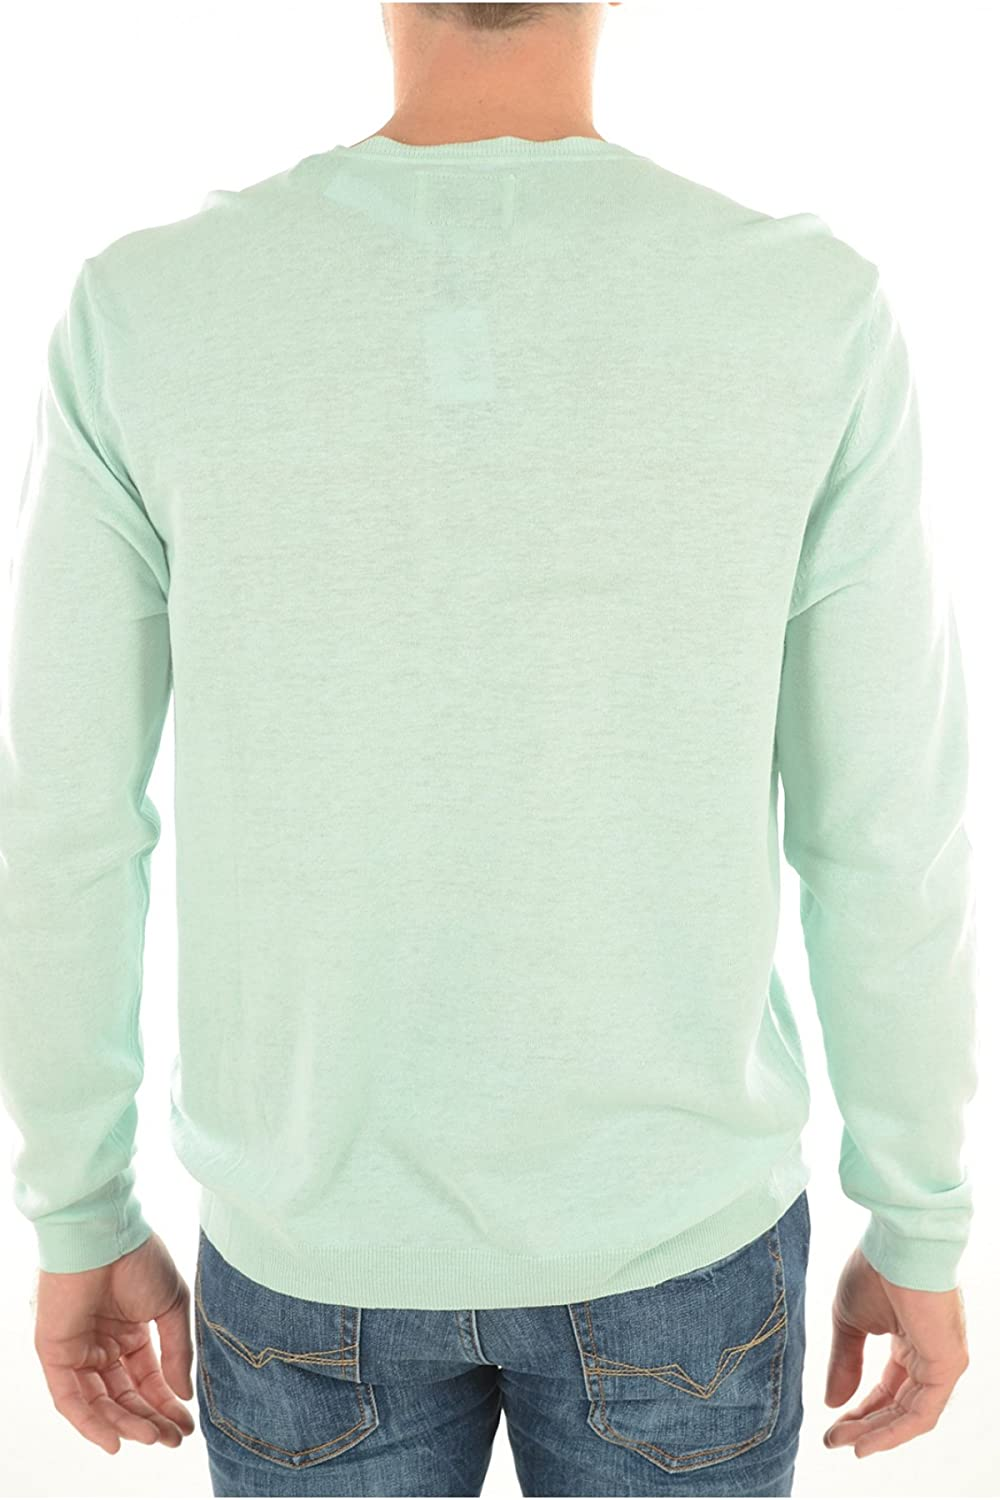 Guess Men's Cardigan green green